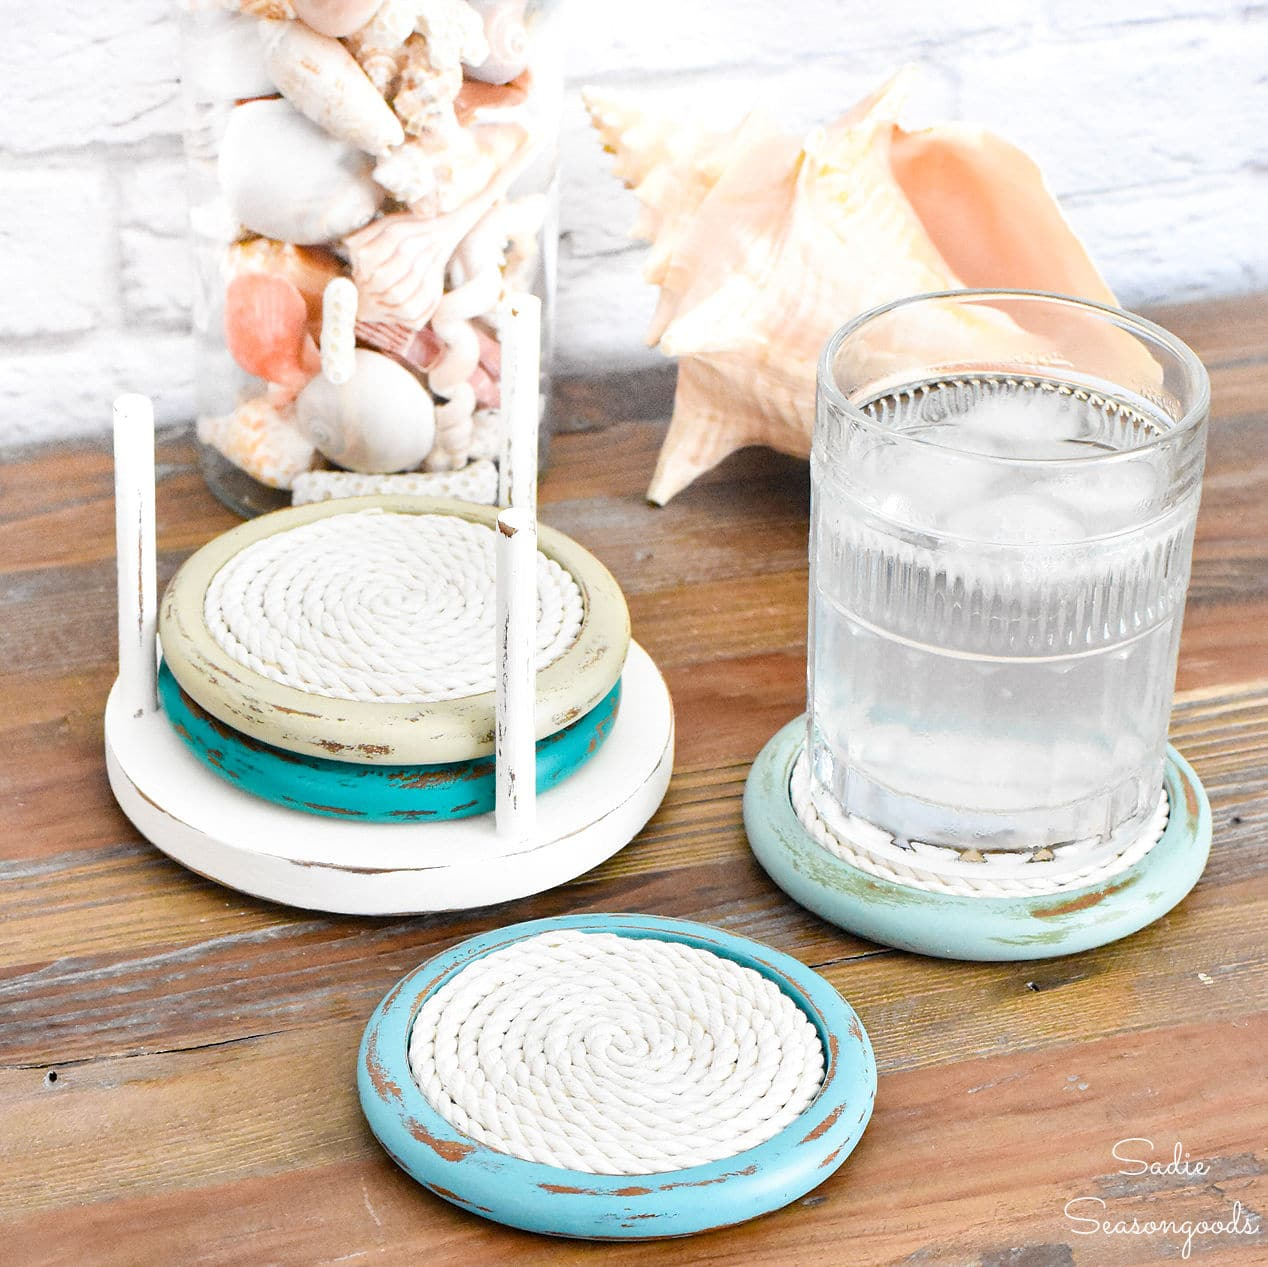 Coastal coasters by Sadie Seasongoods, featured on New Upcycled Projects to Make 591!